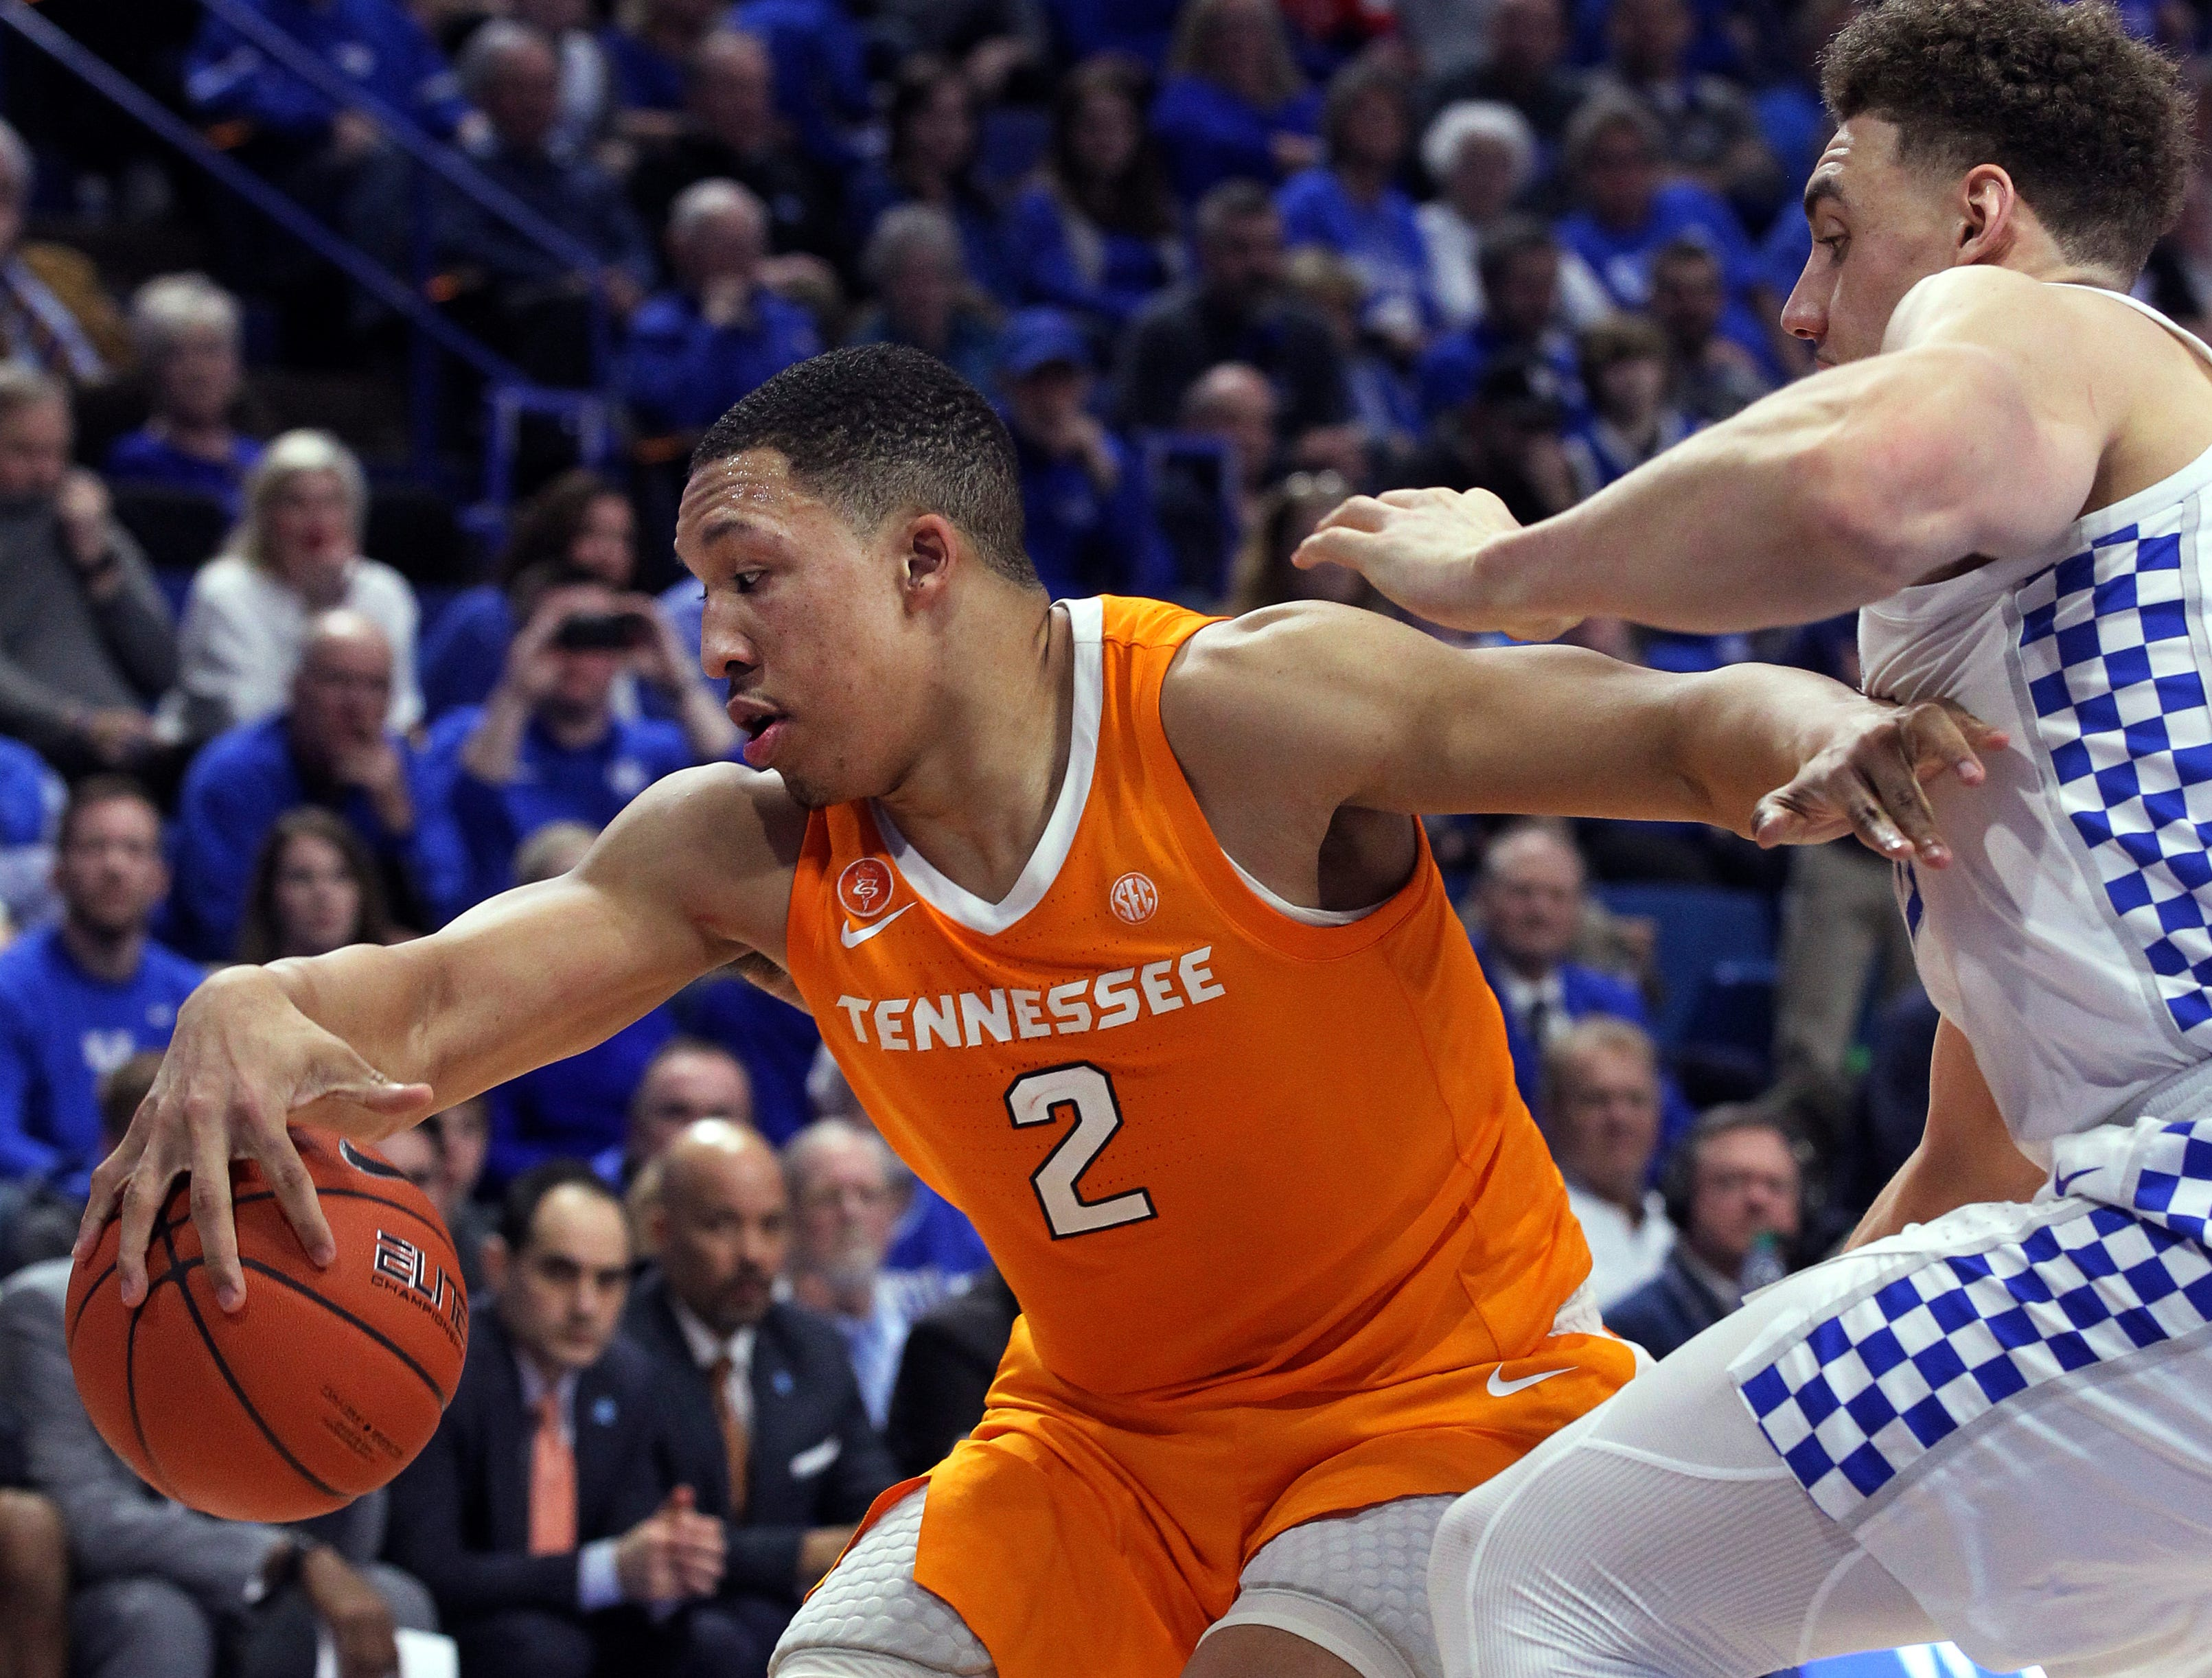 Tennessee's Grant Williams (2) looks for an opening on Kentucky's Reid Travis during the second half of an NCAA college basketball game in Lexington, Ky., Saturday, Feb. 16, 2019. Kentucky won 86-69.(AP Photo/James Crisp)